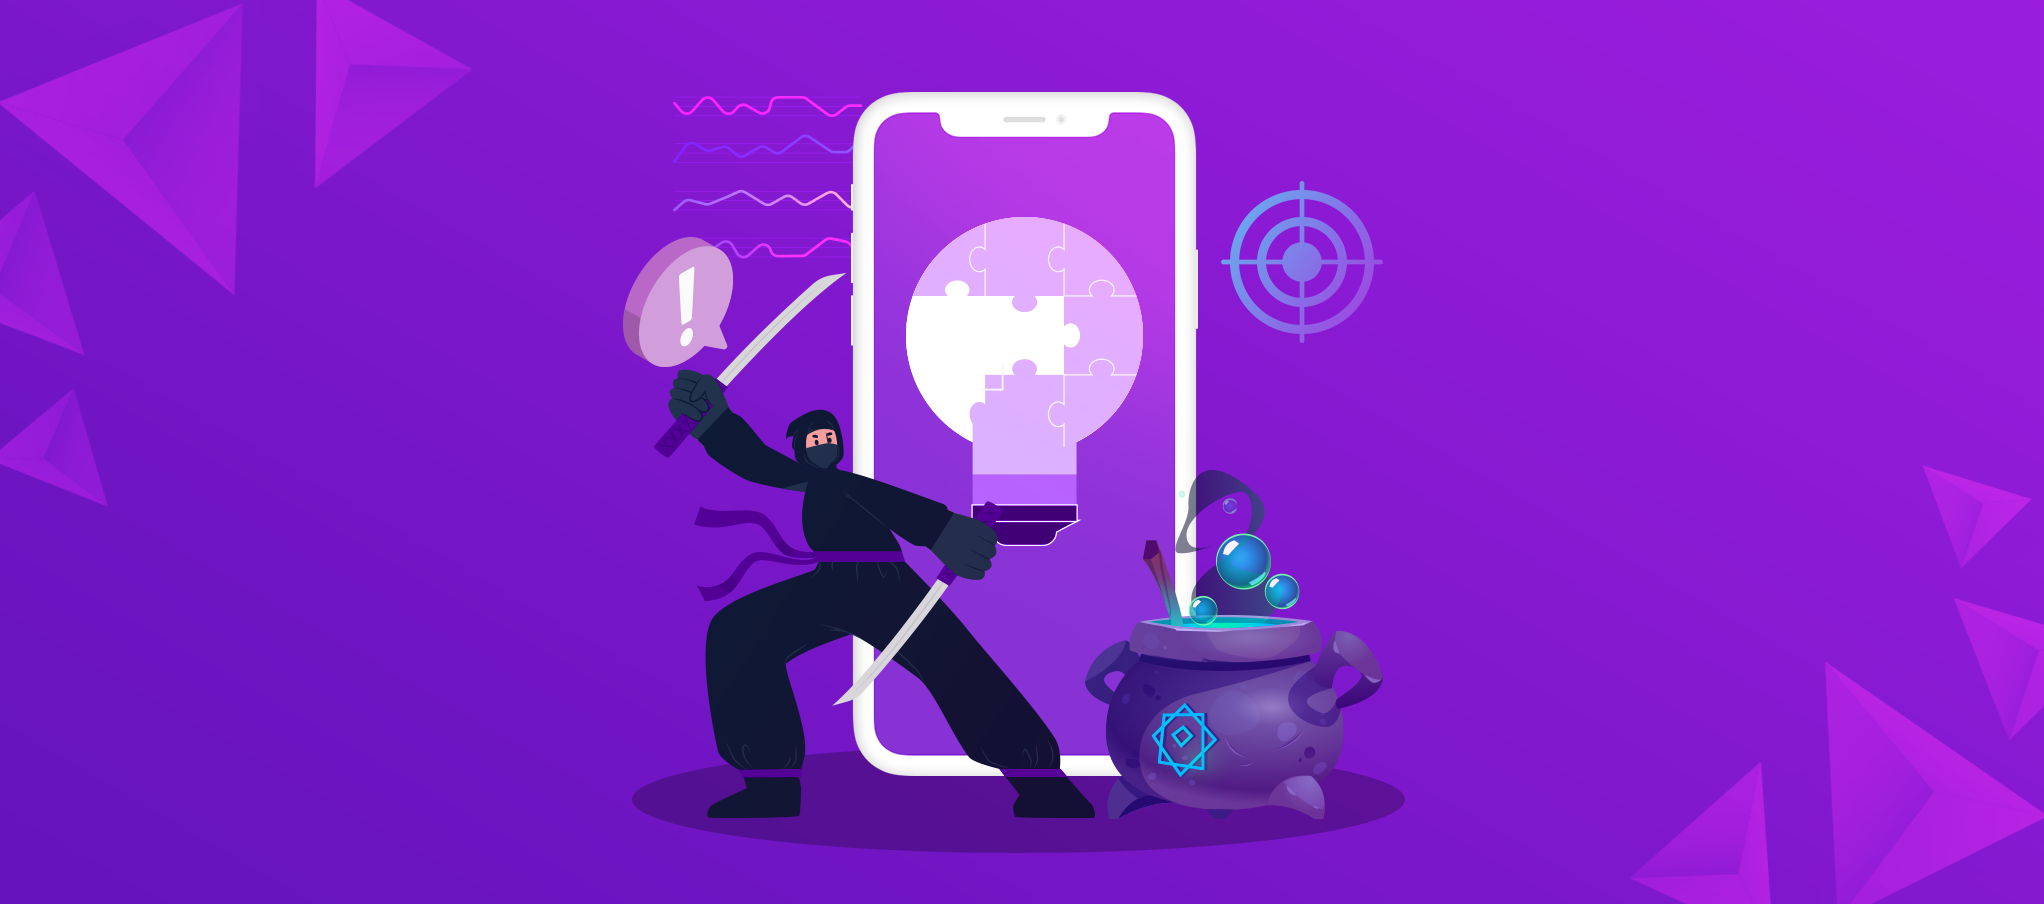 Mobile gaming icons on a screen, RPG, Puzzle, hyper casual